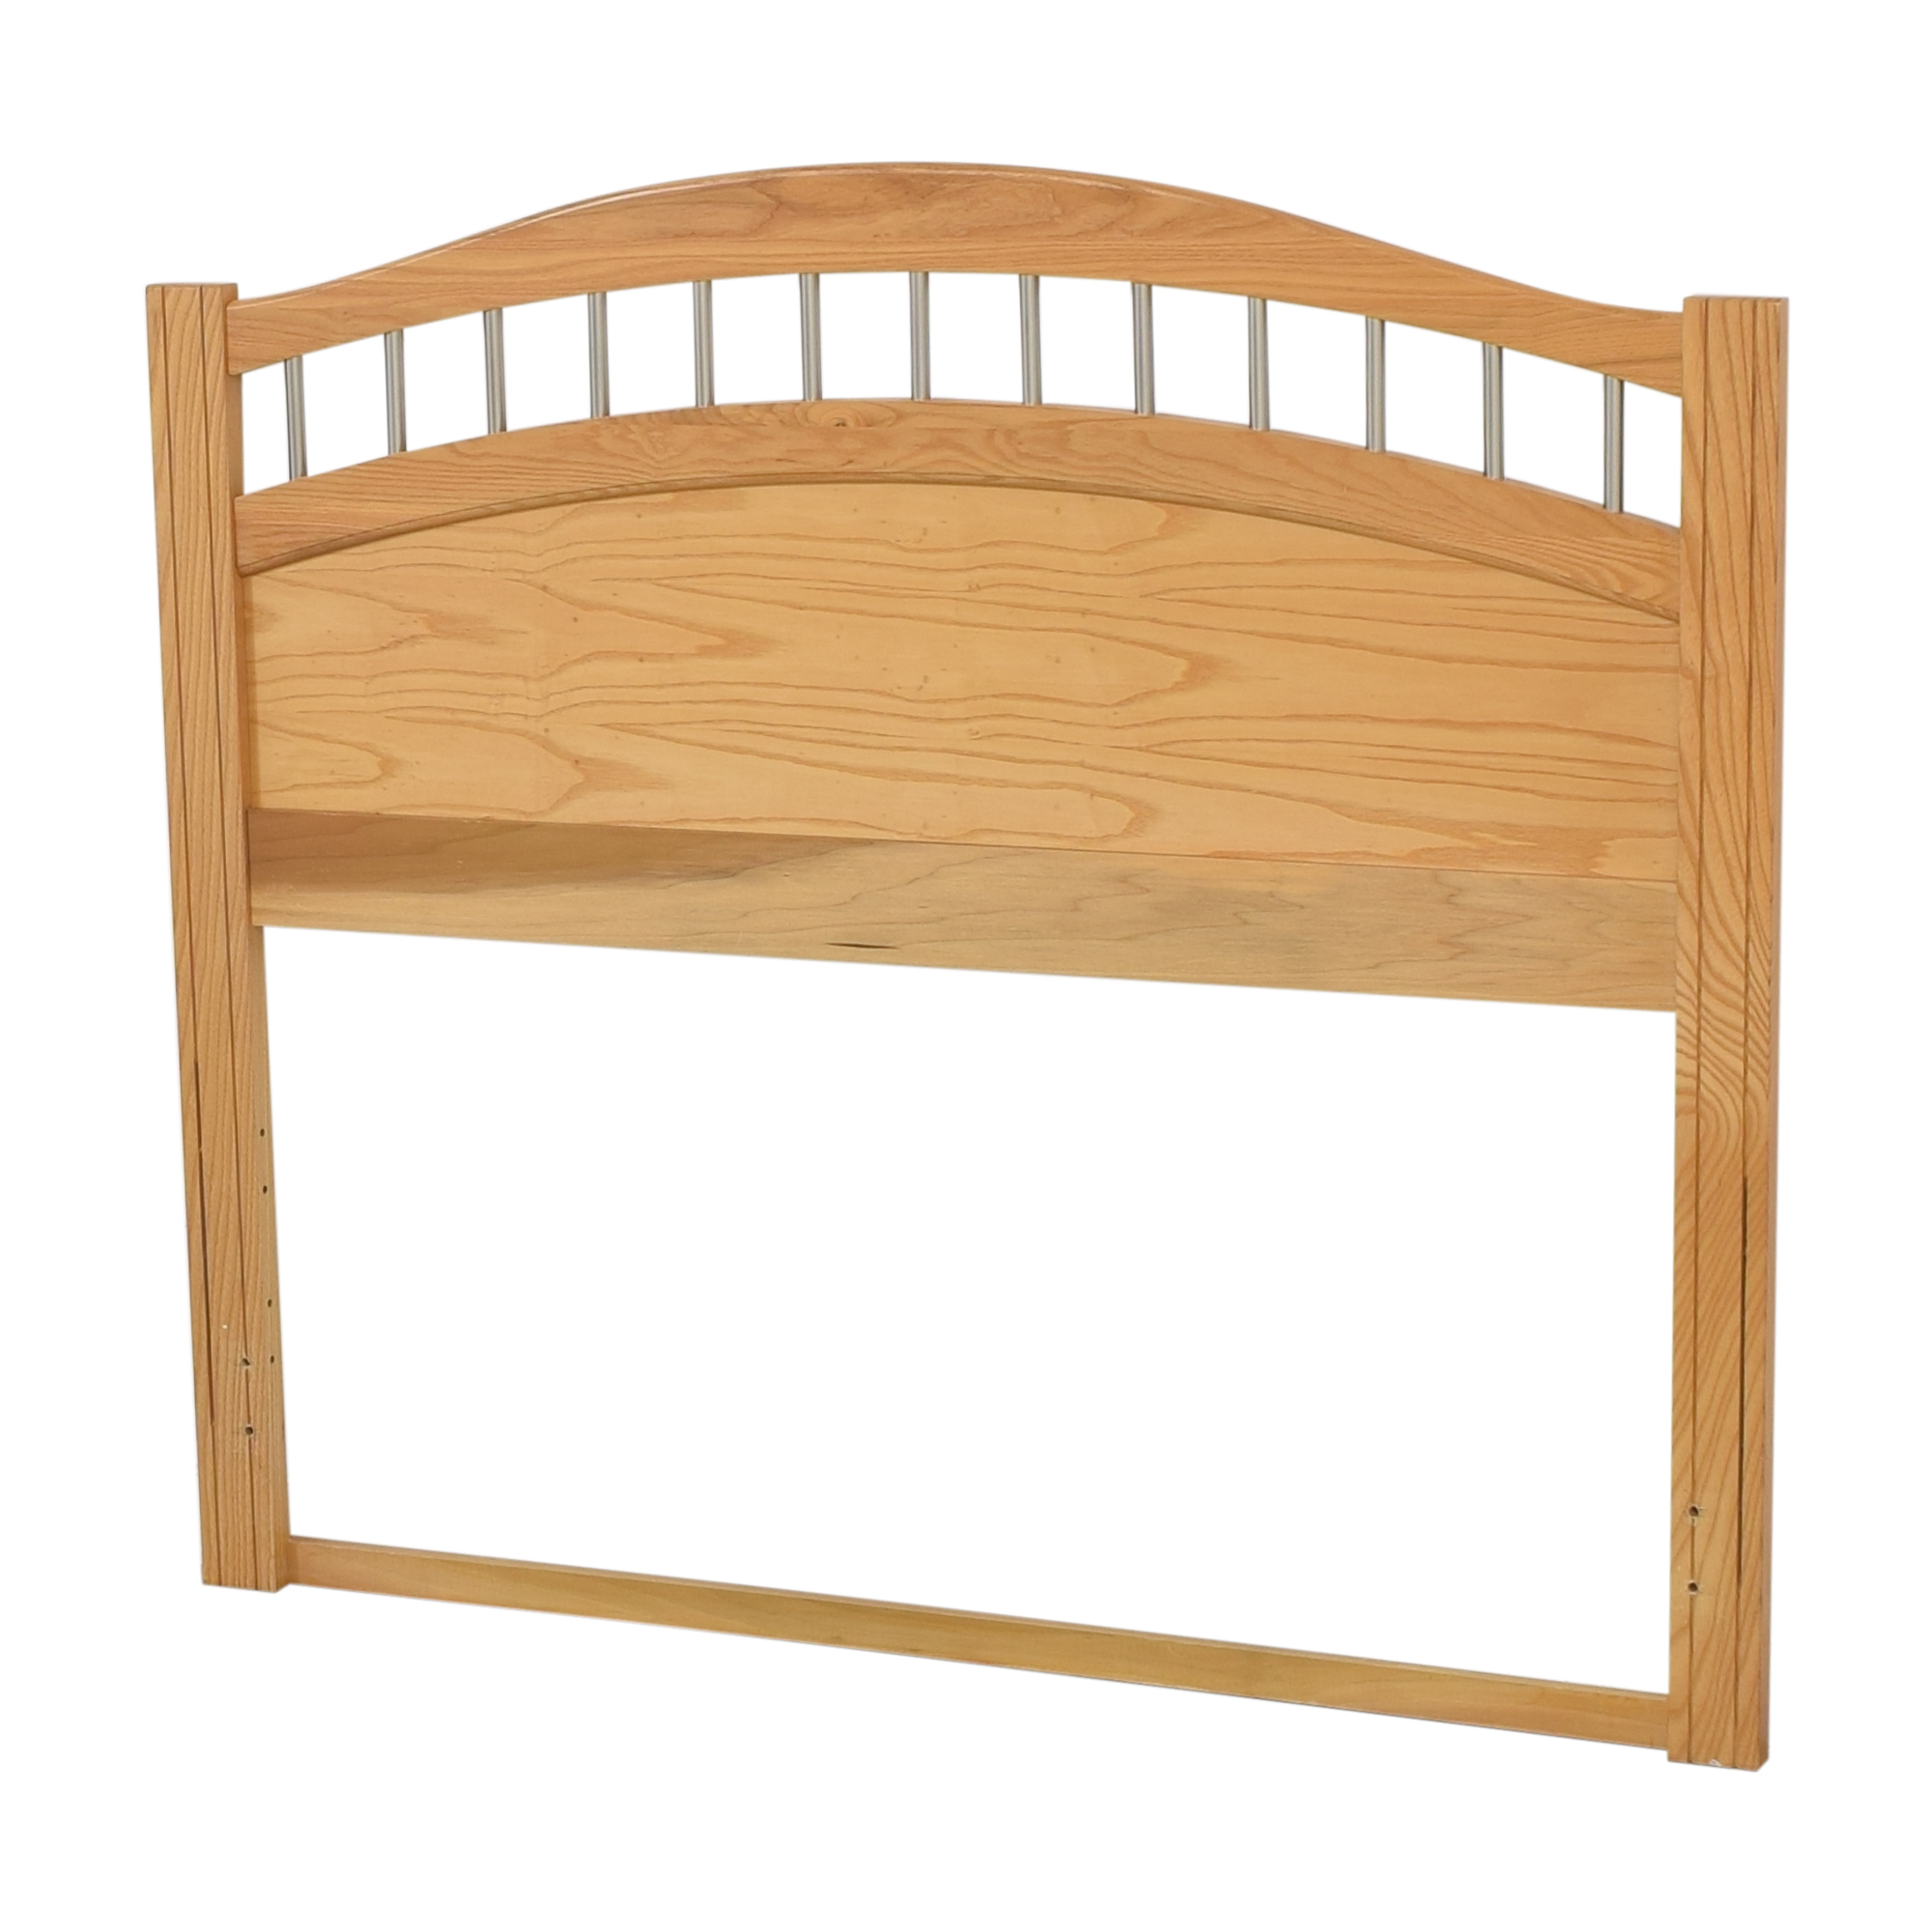 Vaughan Furniture Vaughan Furniture Company Full Panel Headboard dimensions